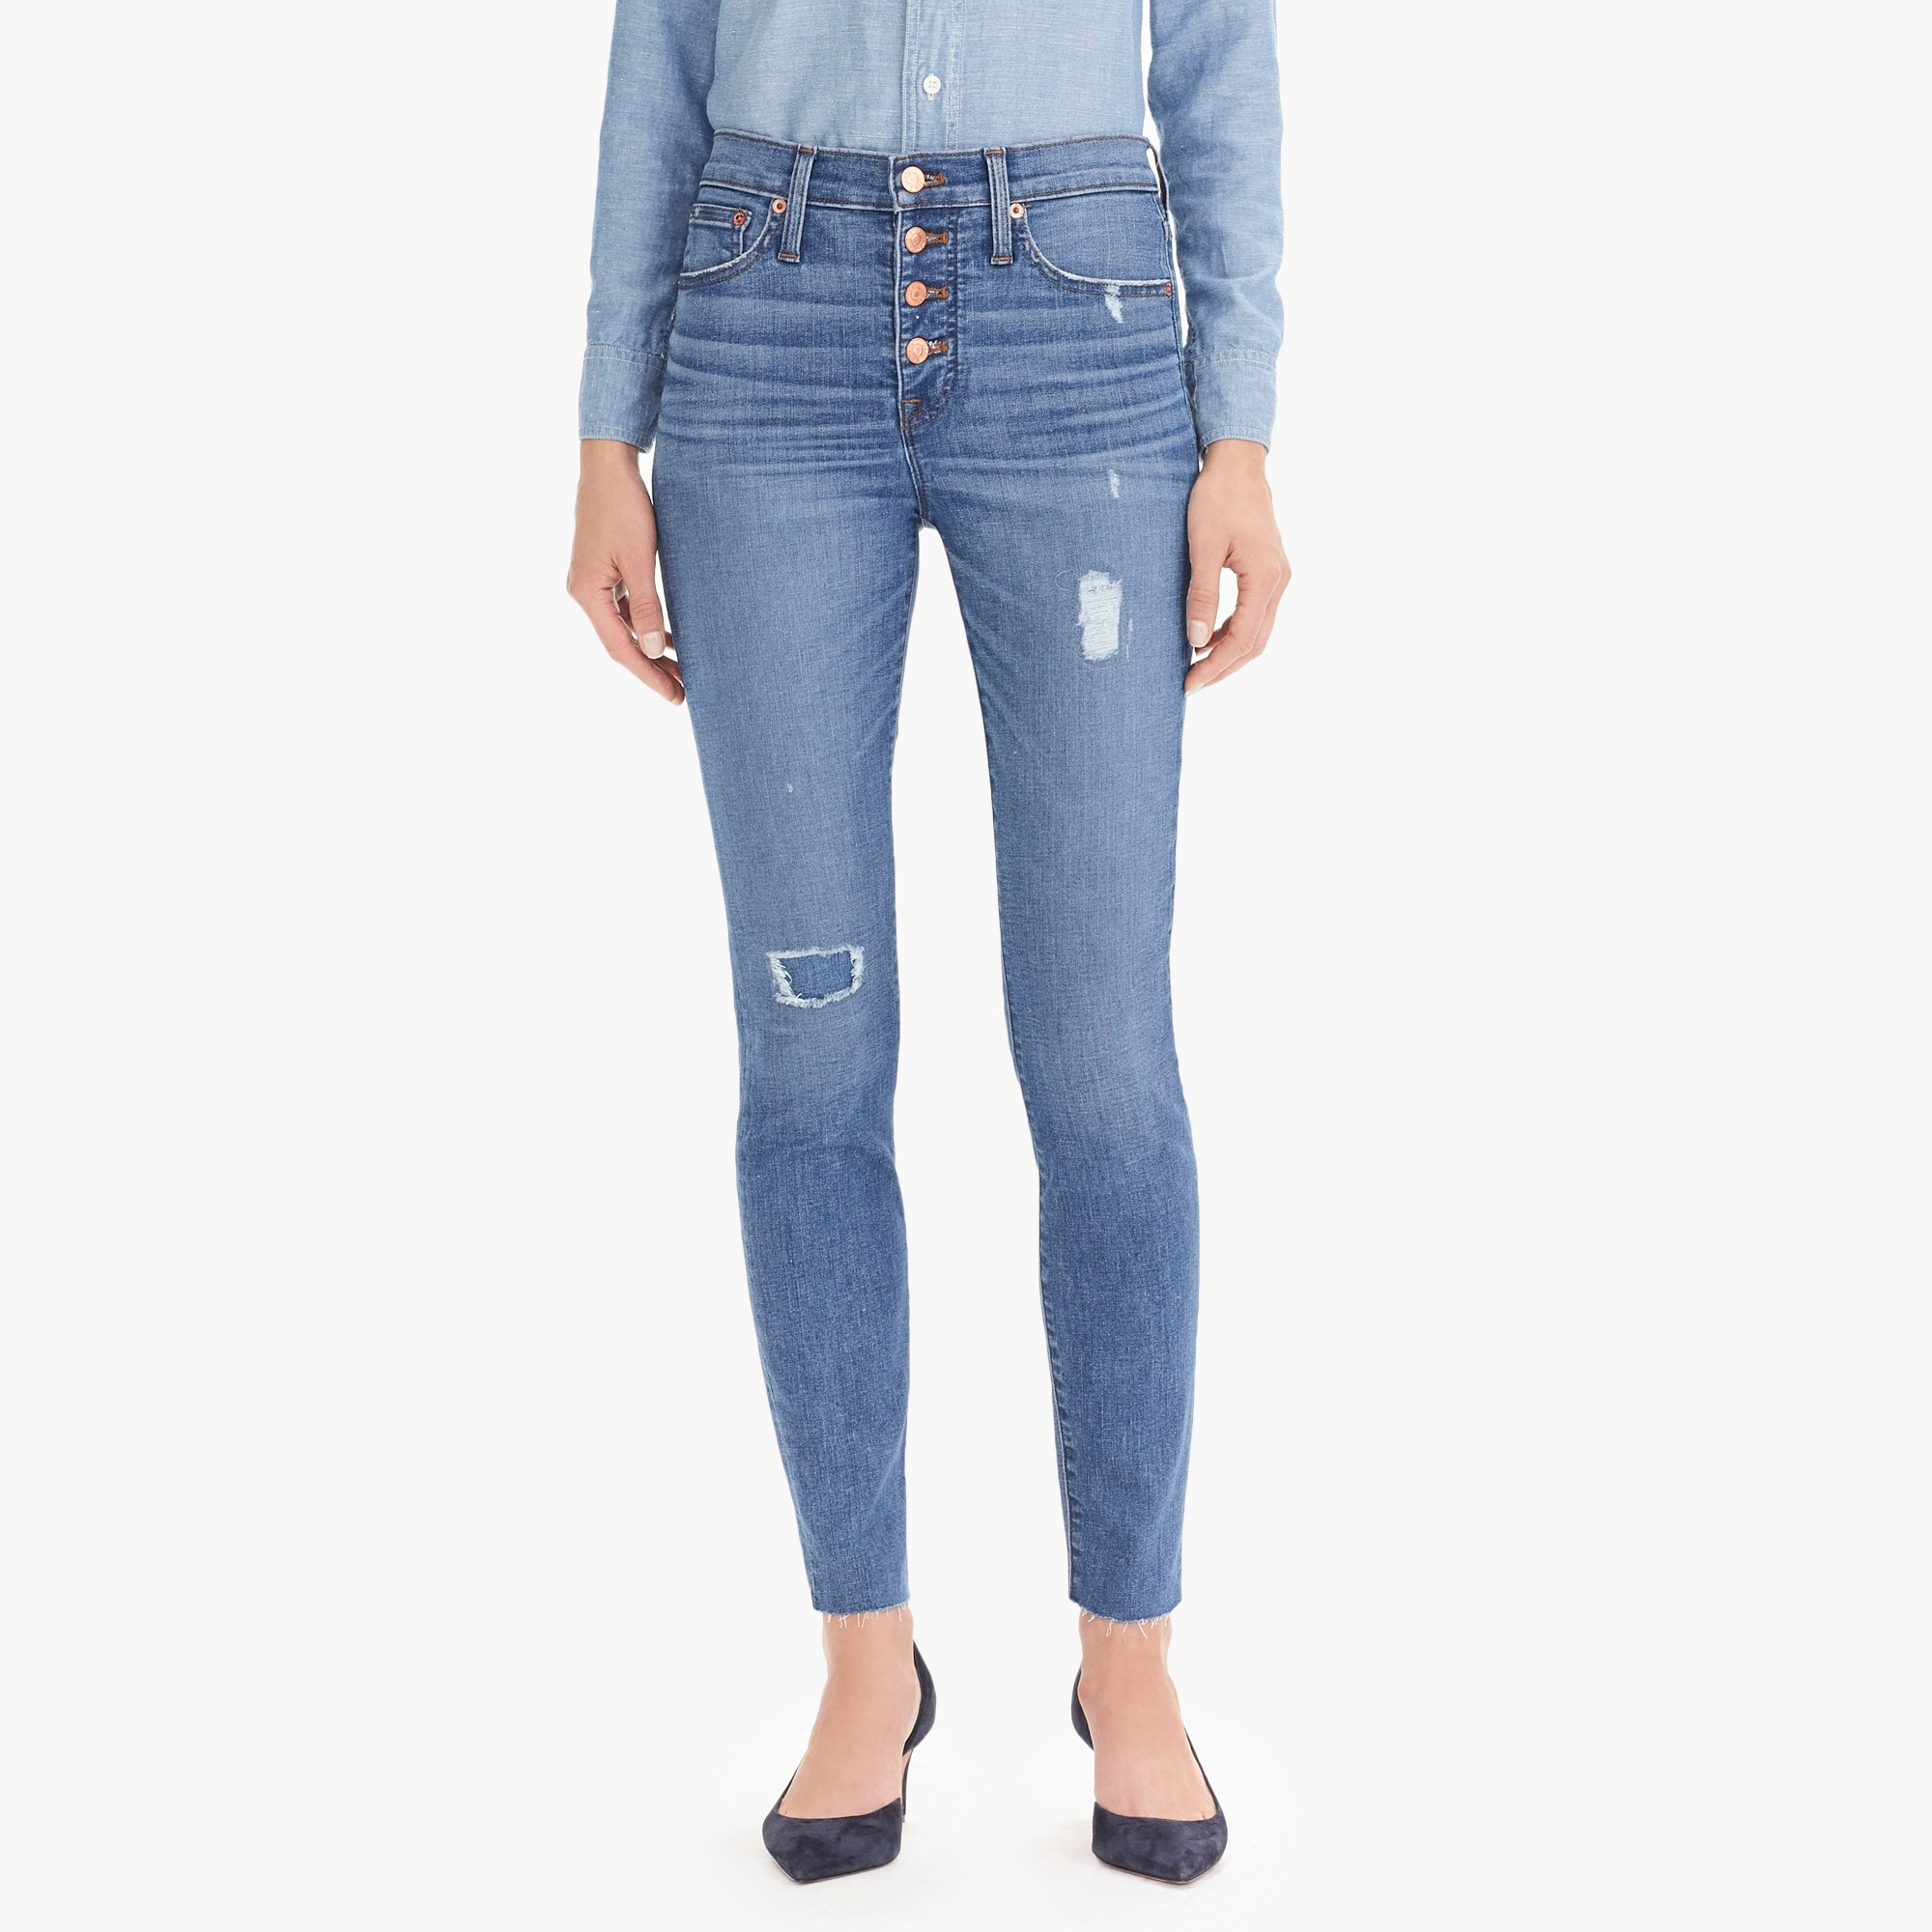 women's petite 9 high-rise toothpick jean with button fly and cut hems - women's denim